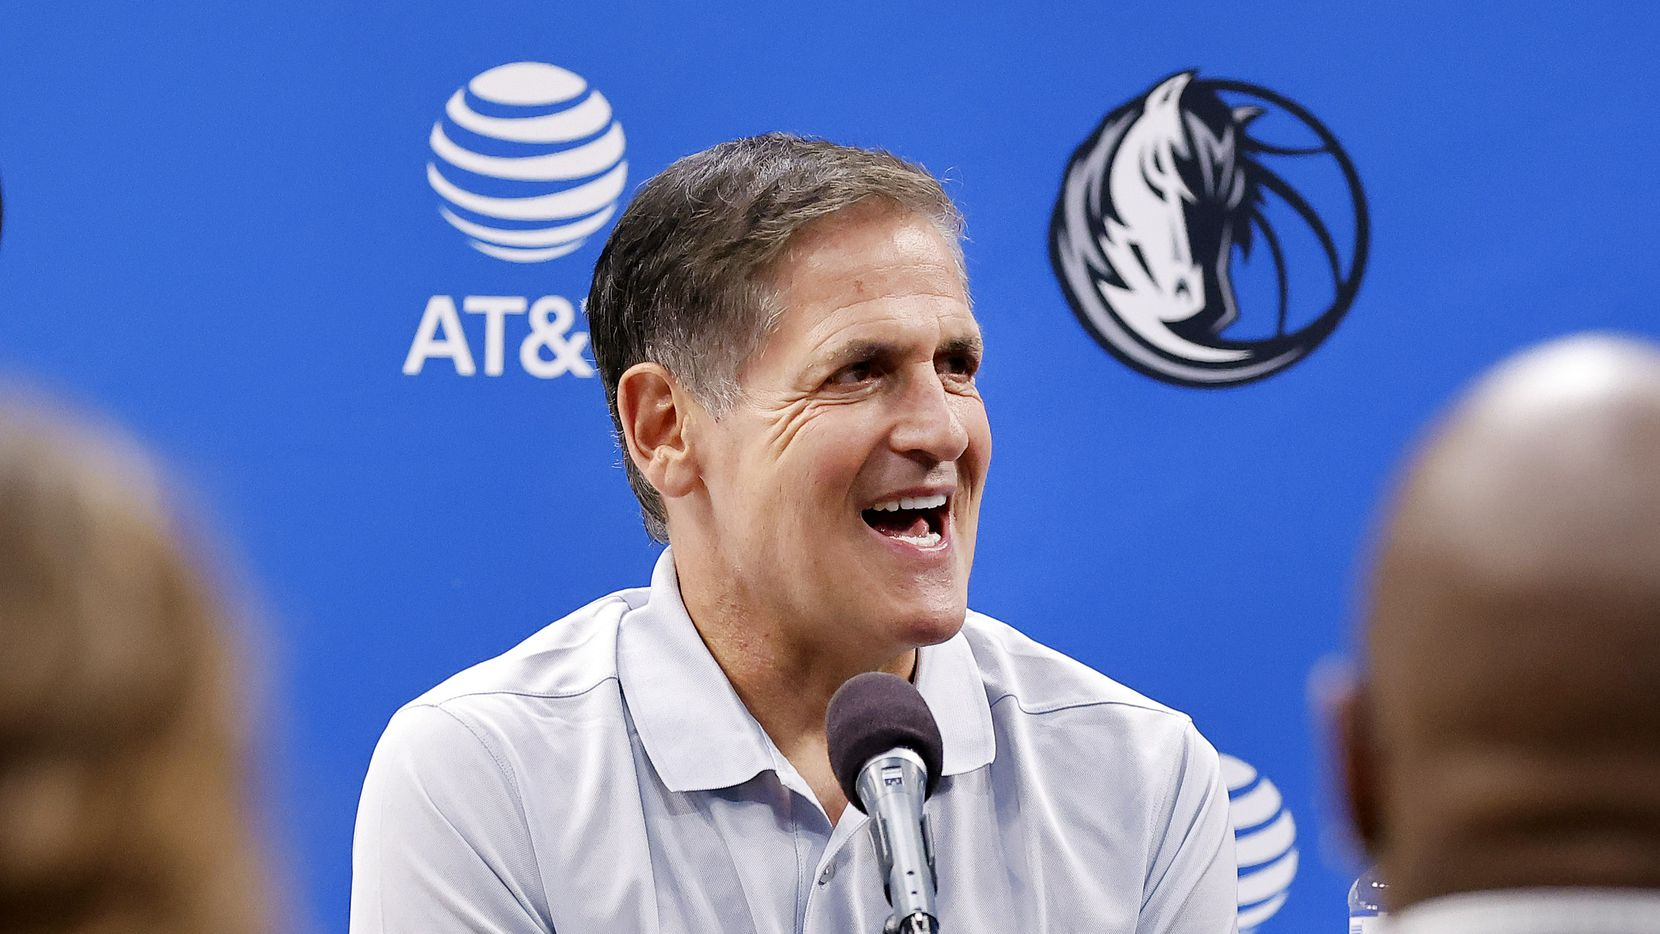 Dallas Mavericks owner Mark Cuban responds to questions from the media after formally introducing a new general manager and head coach at the American Airlines Center, Thursday, July 15, 2021. (Tom Fox/The Dallas Morning News)